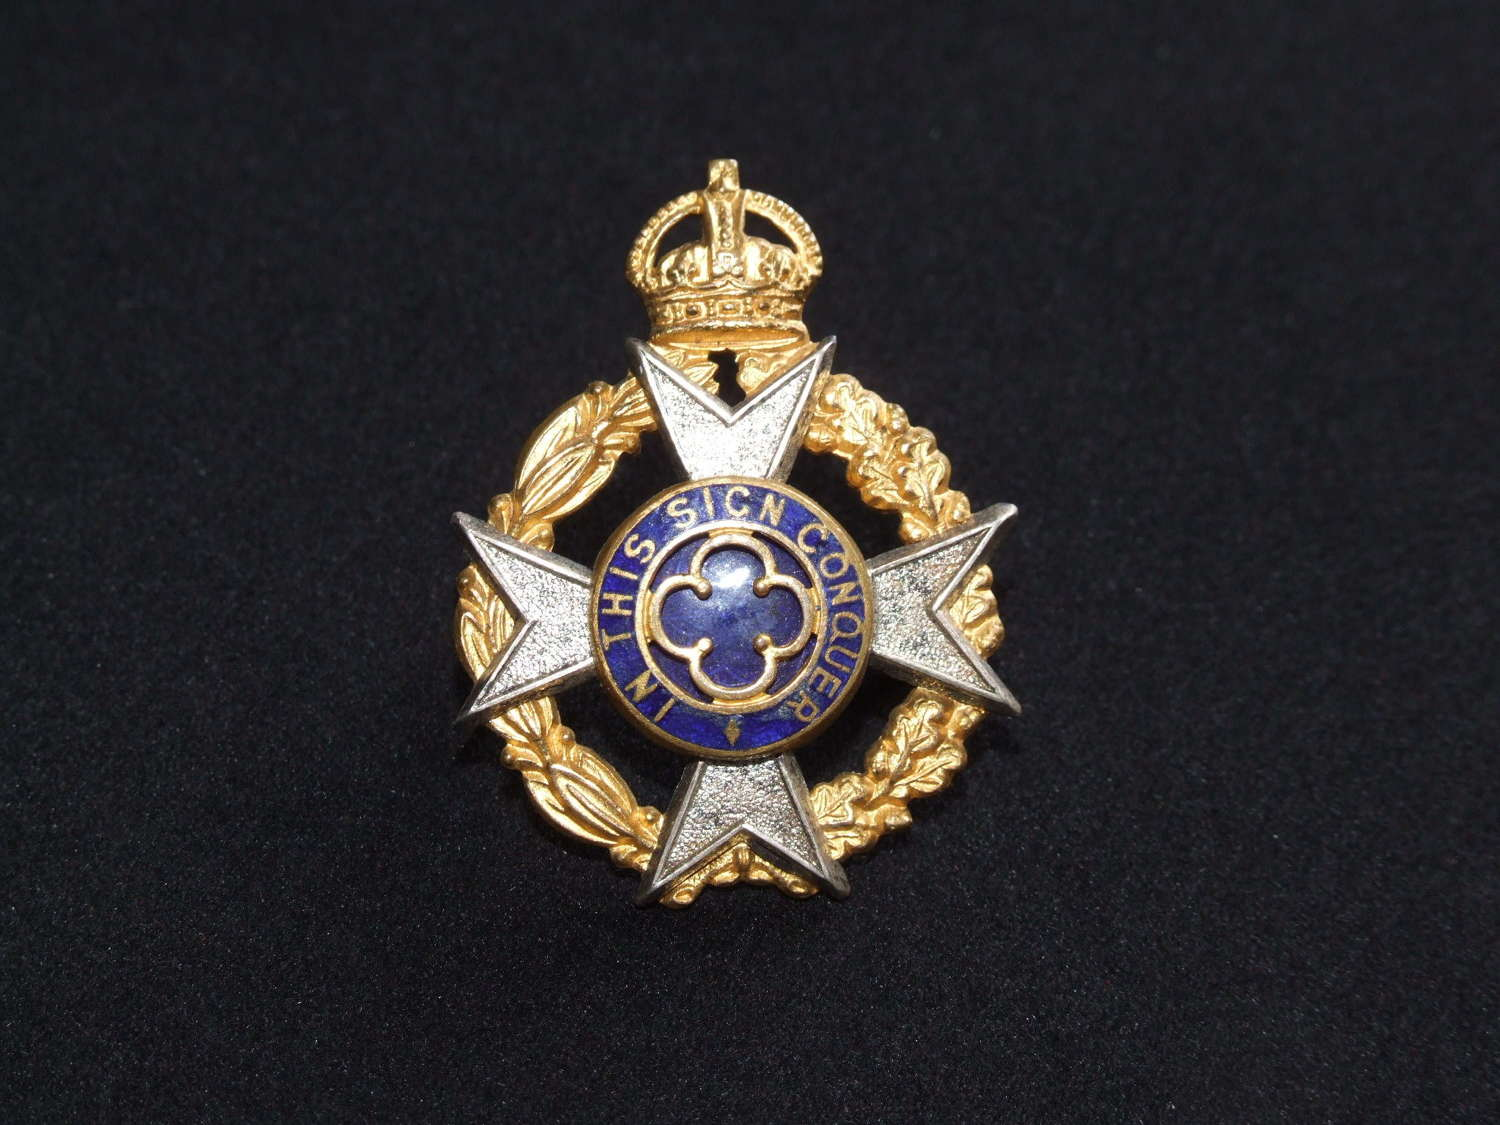 Army Chaplain's King's Crown Cap Badge by Gaunt